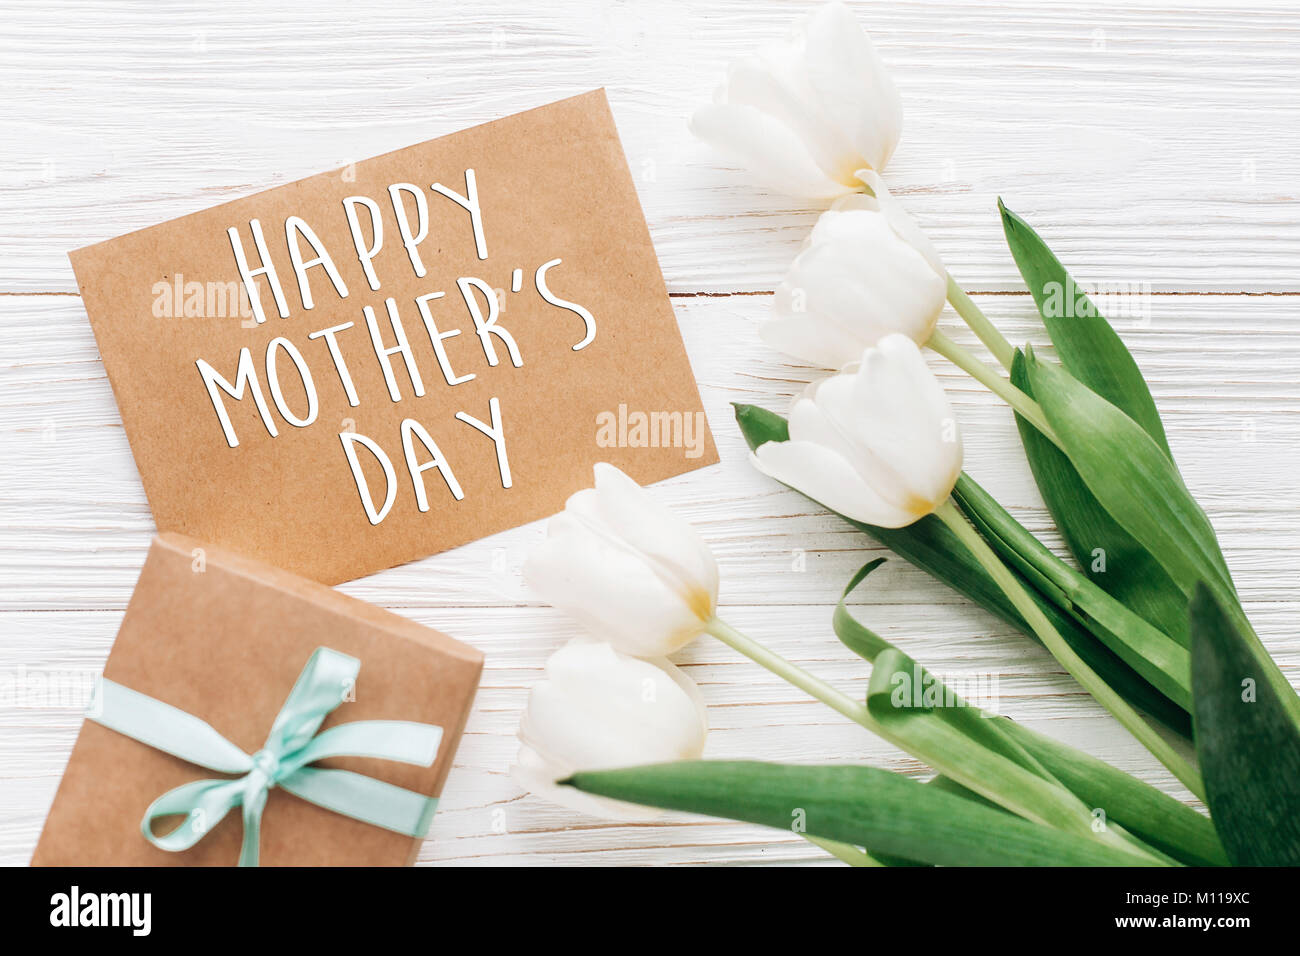 Happy mothers day text sign on stylish craft present with greeting happy mothers day text sign on stylish craft present with greeting card and tulips on white wooden rustic background flat lay with flowers and gift w kristyandbryce Choice Image